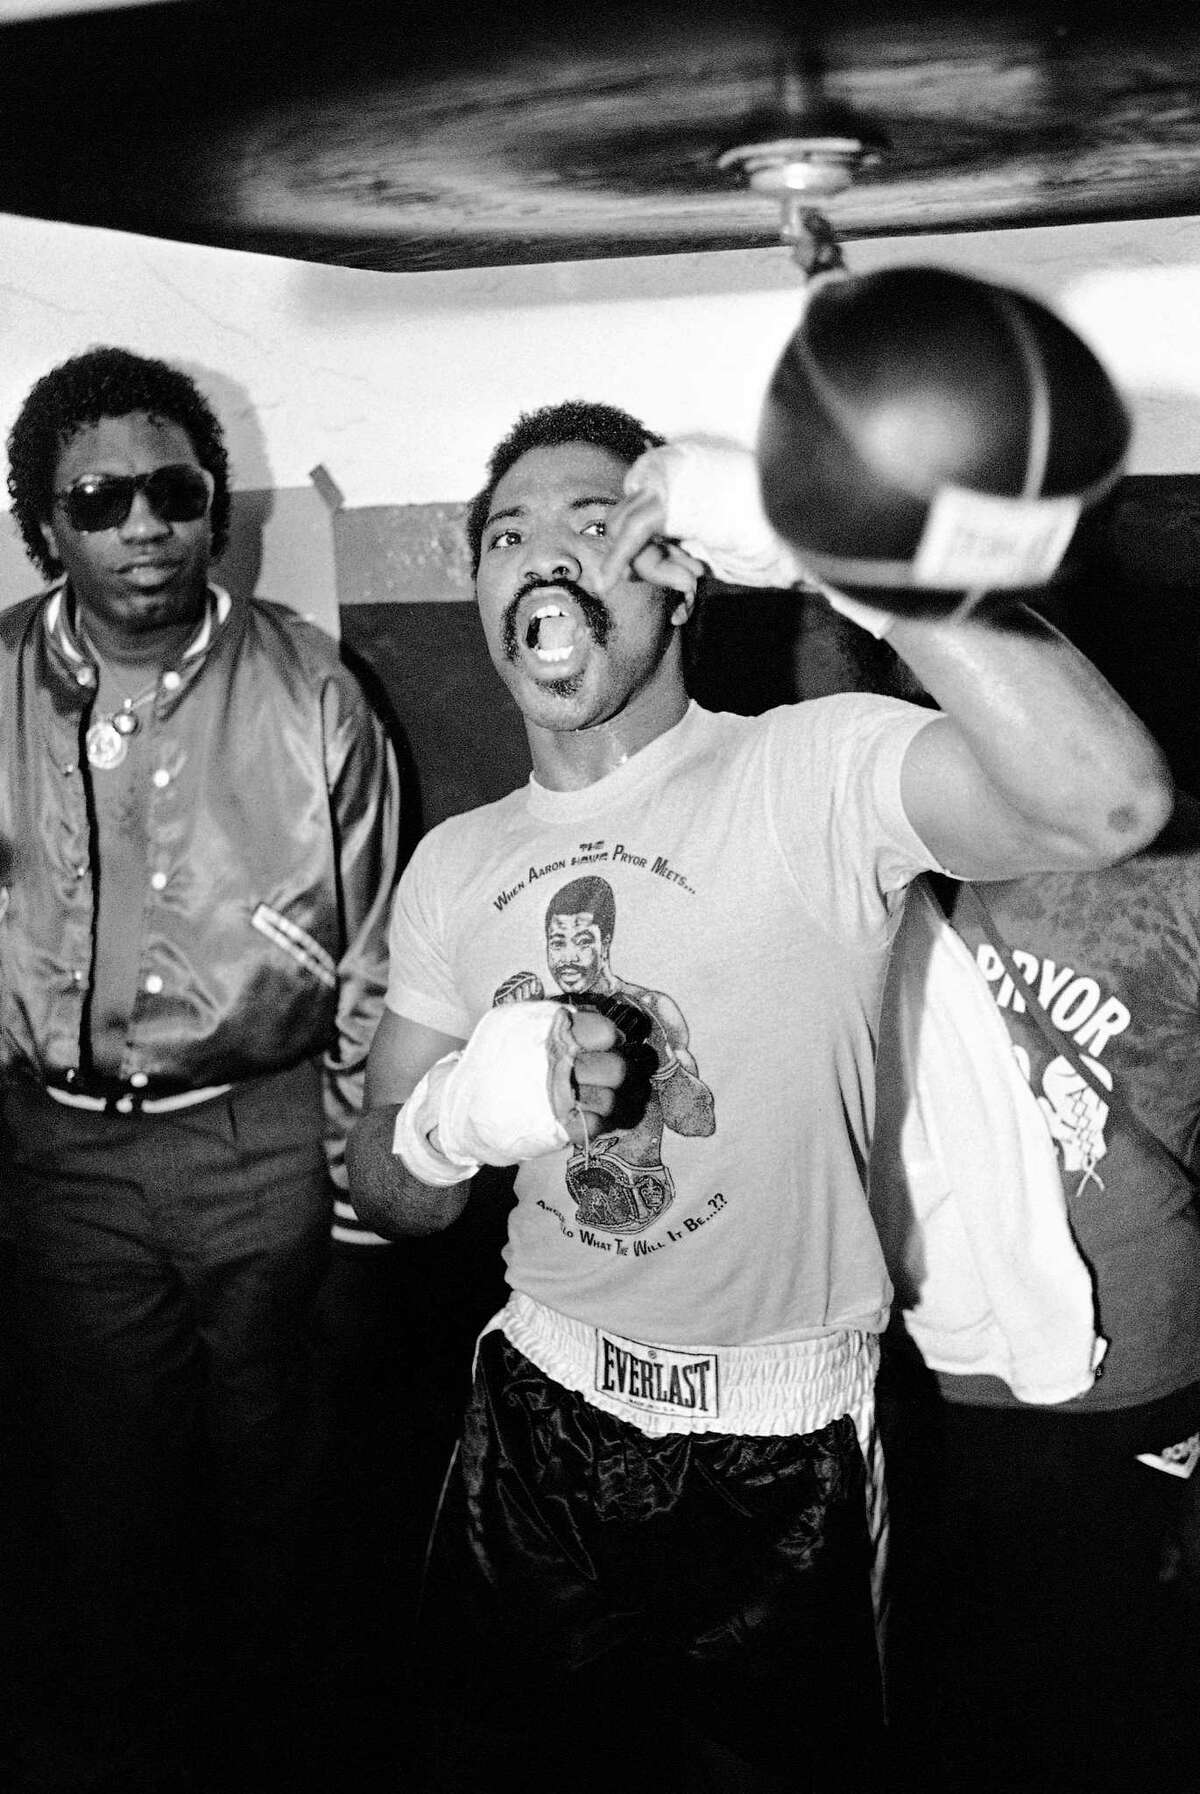 In this photo from 1982, Aaron Pryor yells as he trains on the speed bag at his Coconut Grove training camp in Miami.